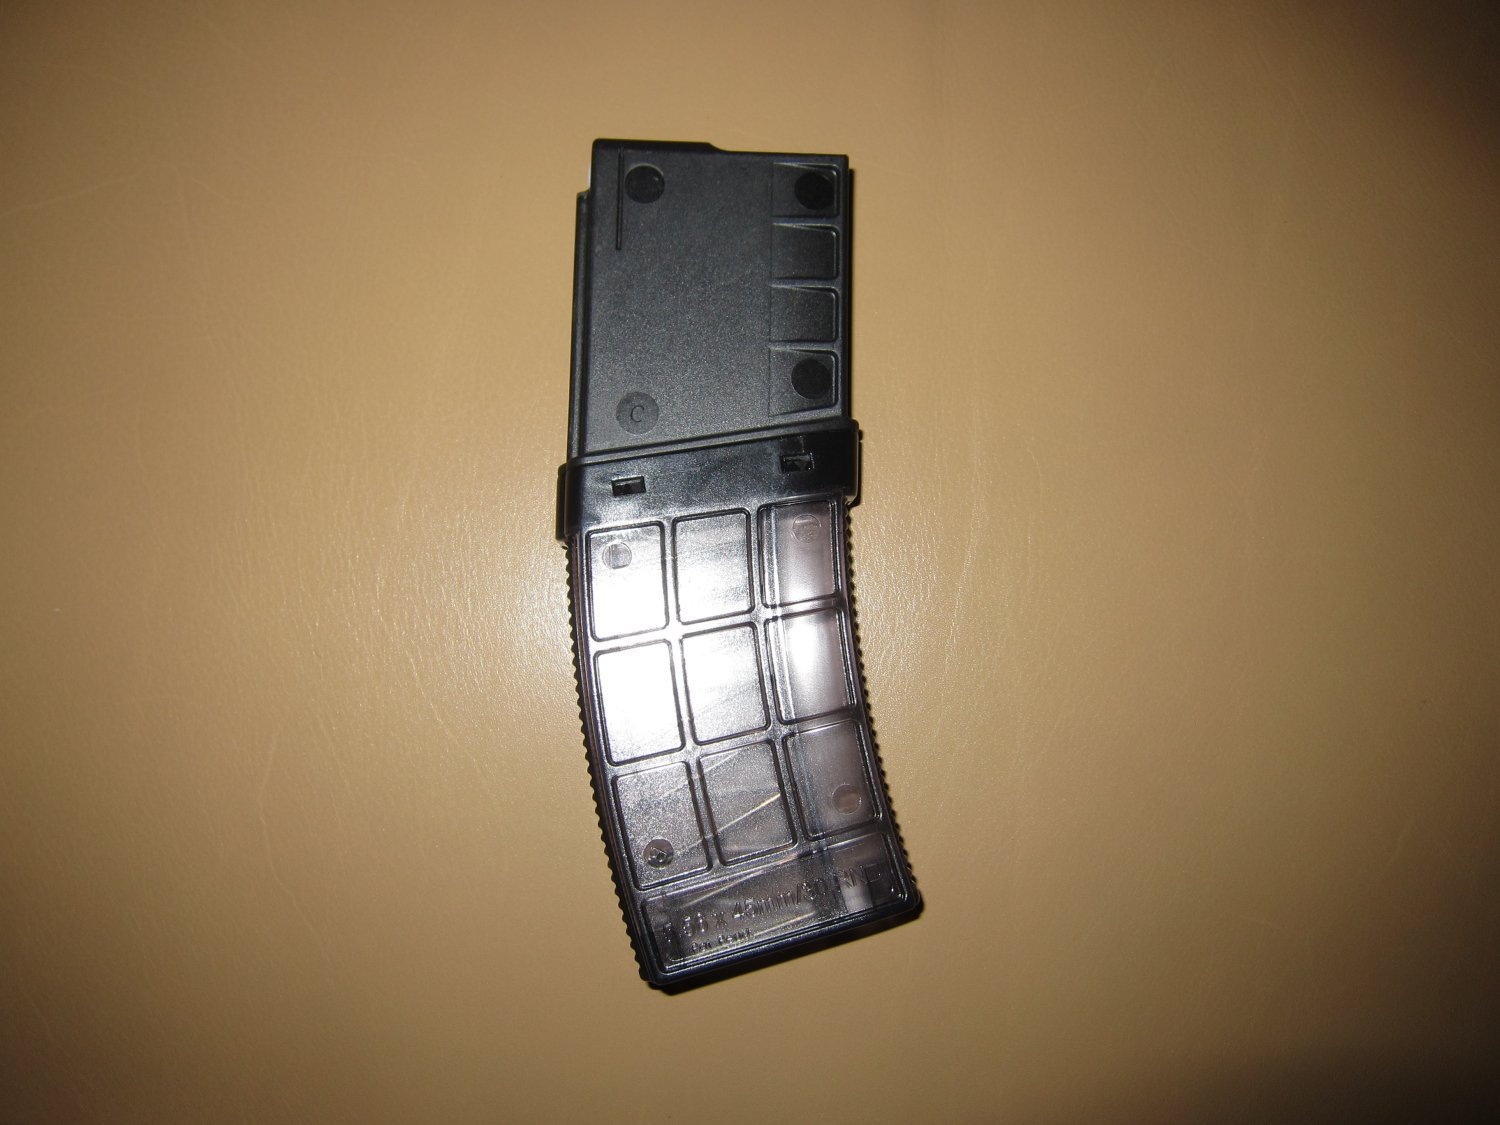 <!--:en-->TangoDown Introduces 30-Round Translucent Polymer ARC Magazine for Tactical ARs<!--:-->